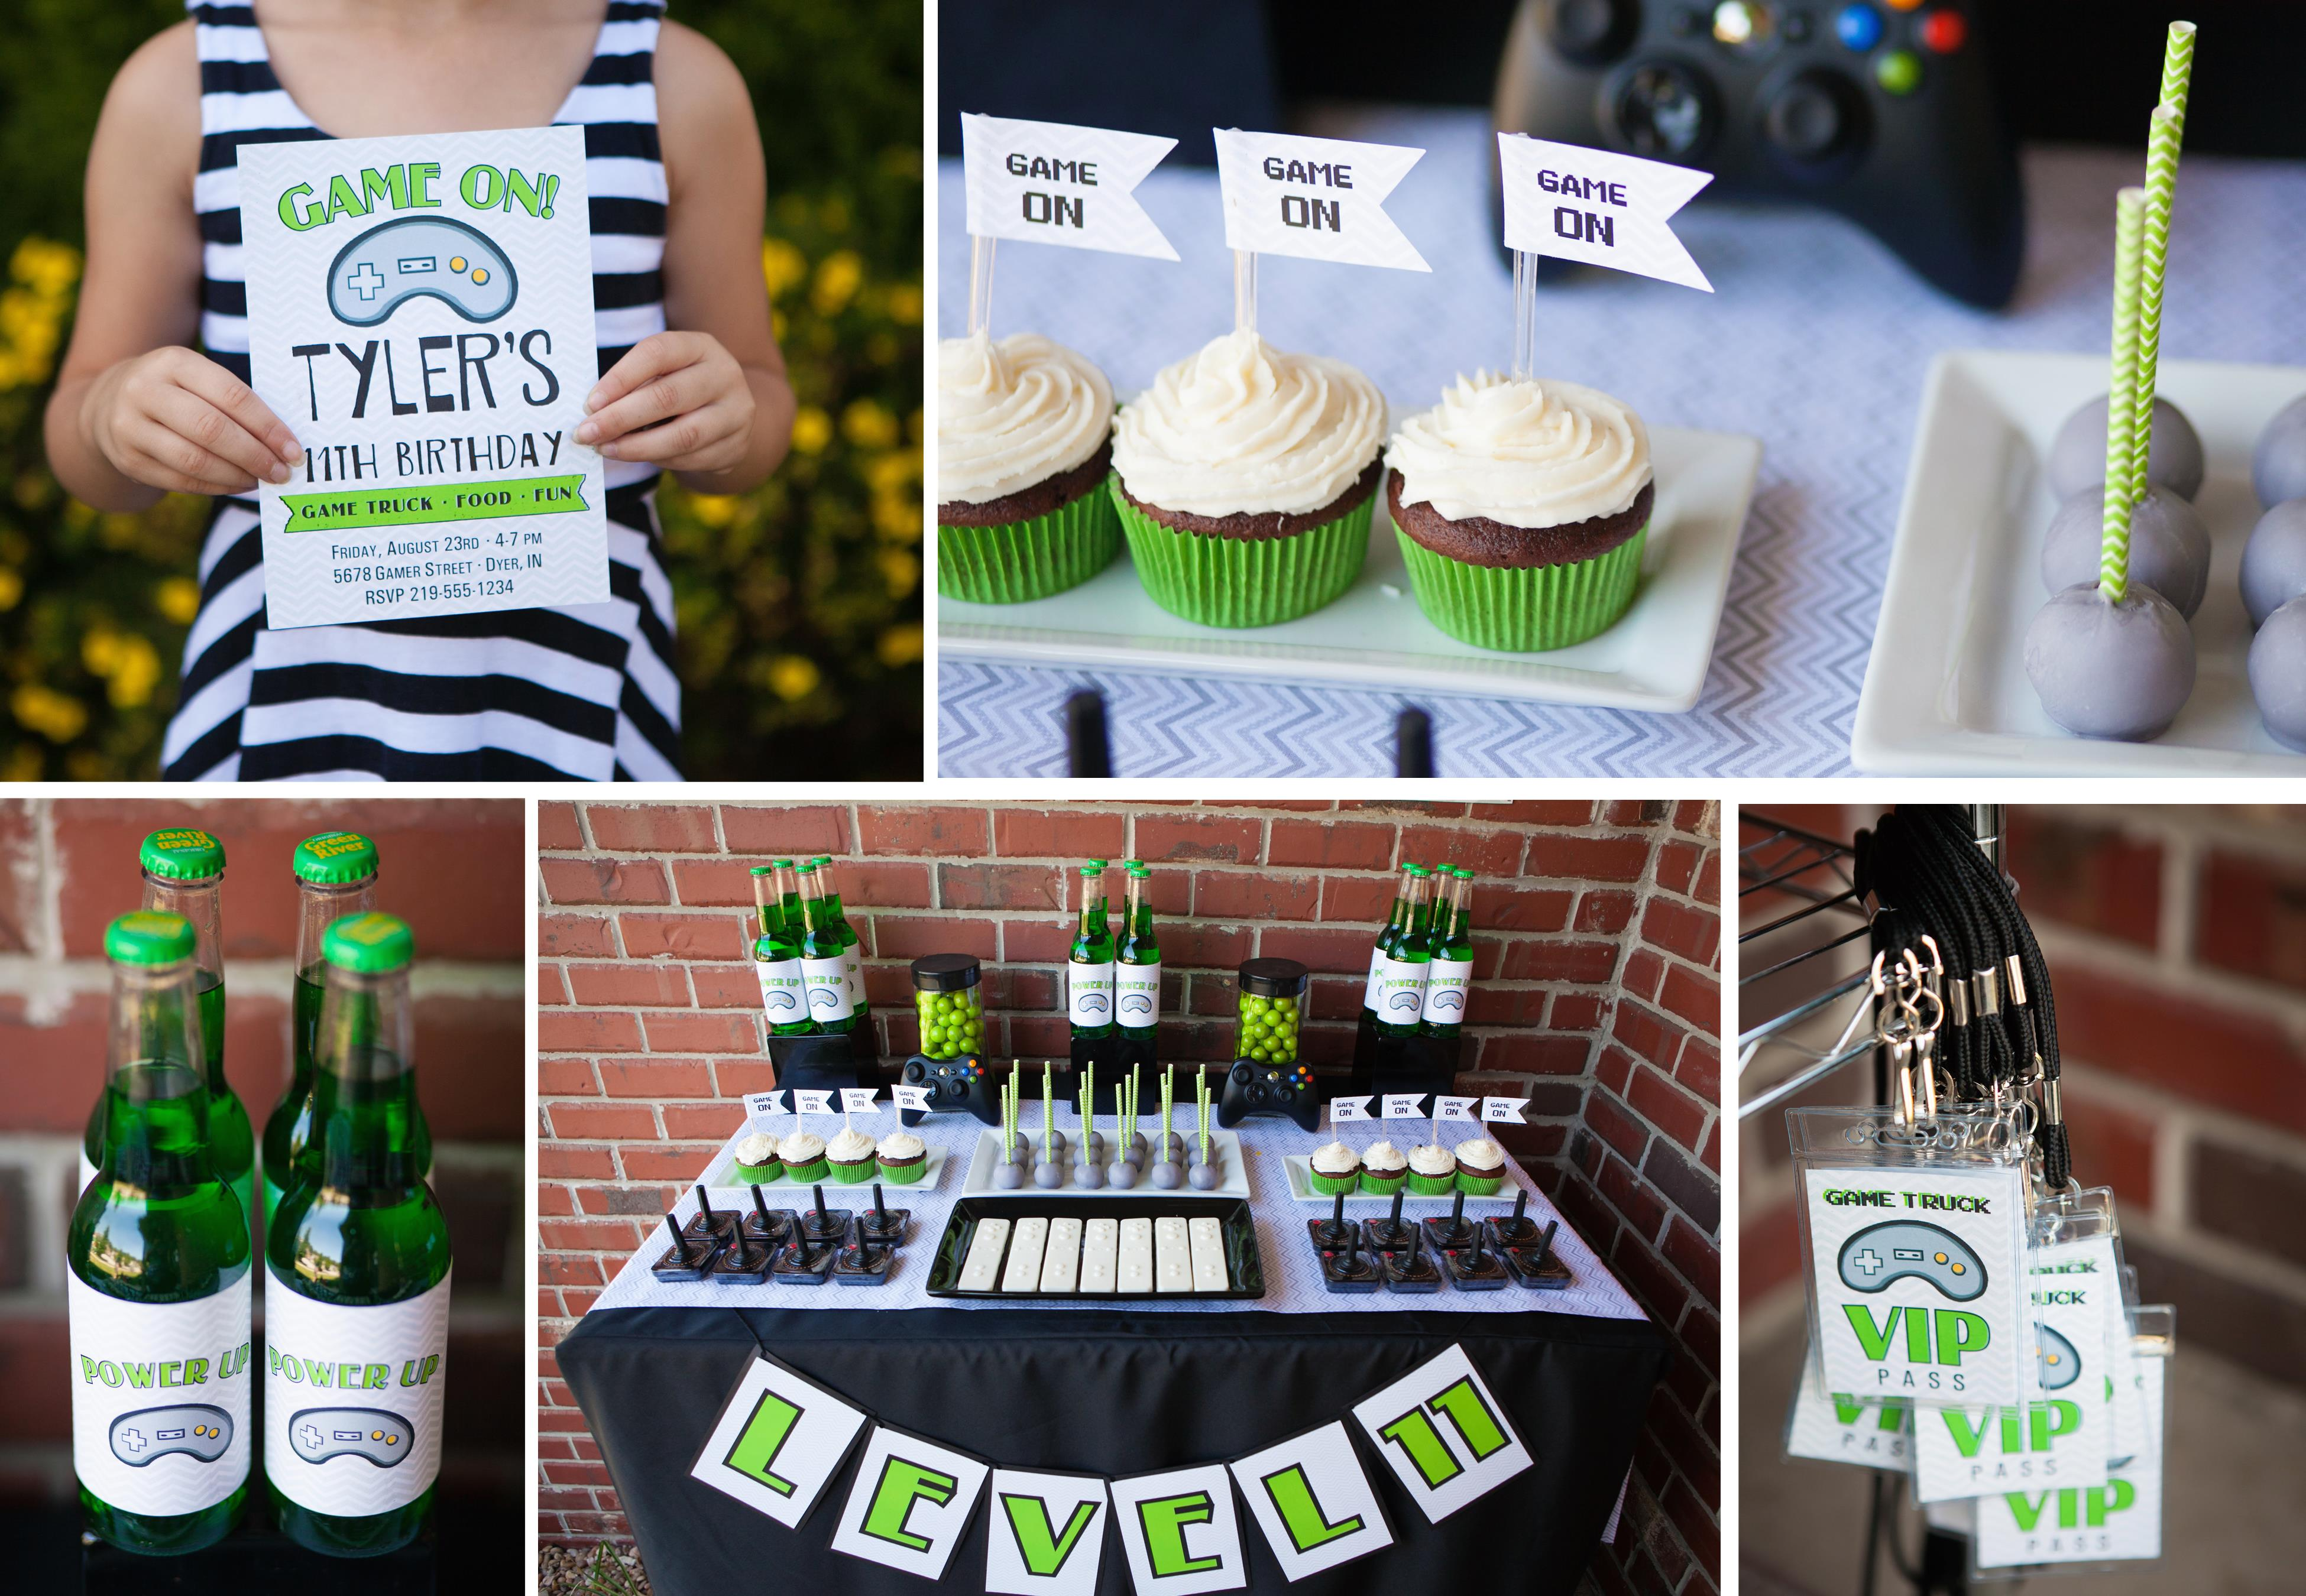 Video Game Truck Printable Party Set and Invite | The Homespun Hostess